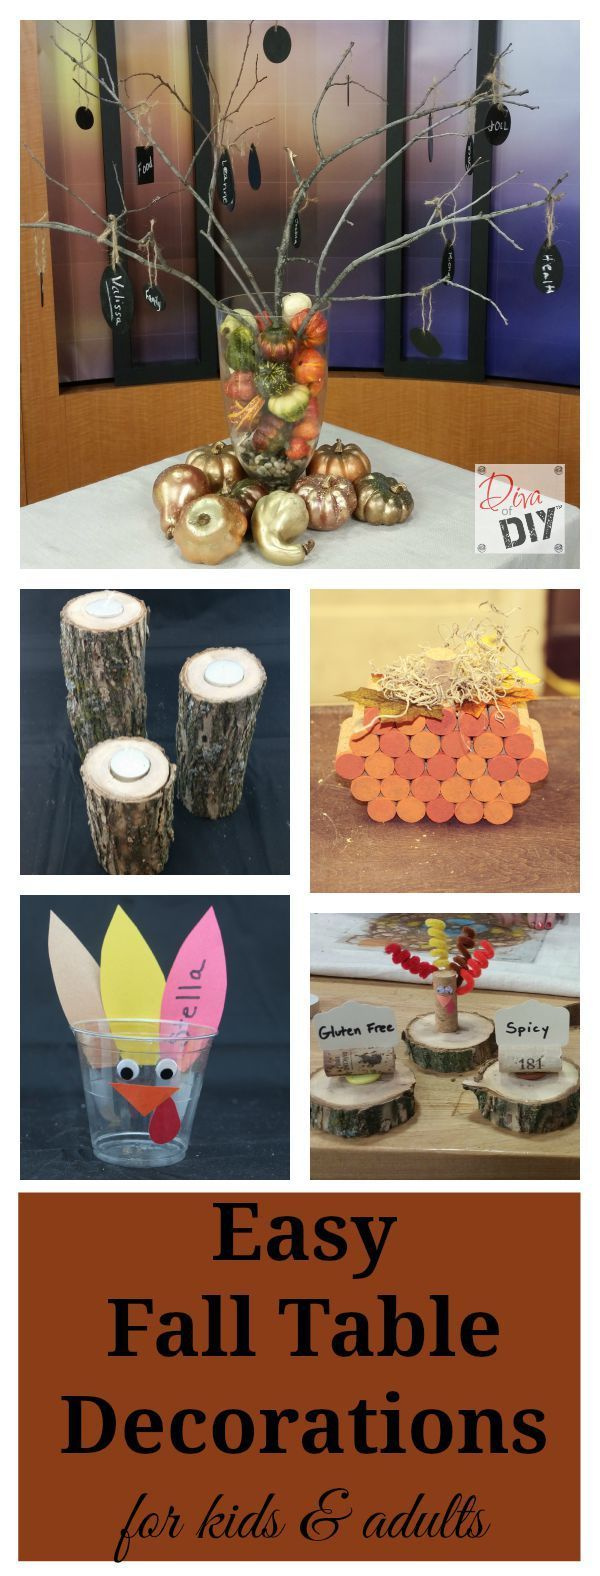 Easy Fall Table Decorations 192 best Diva